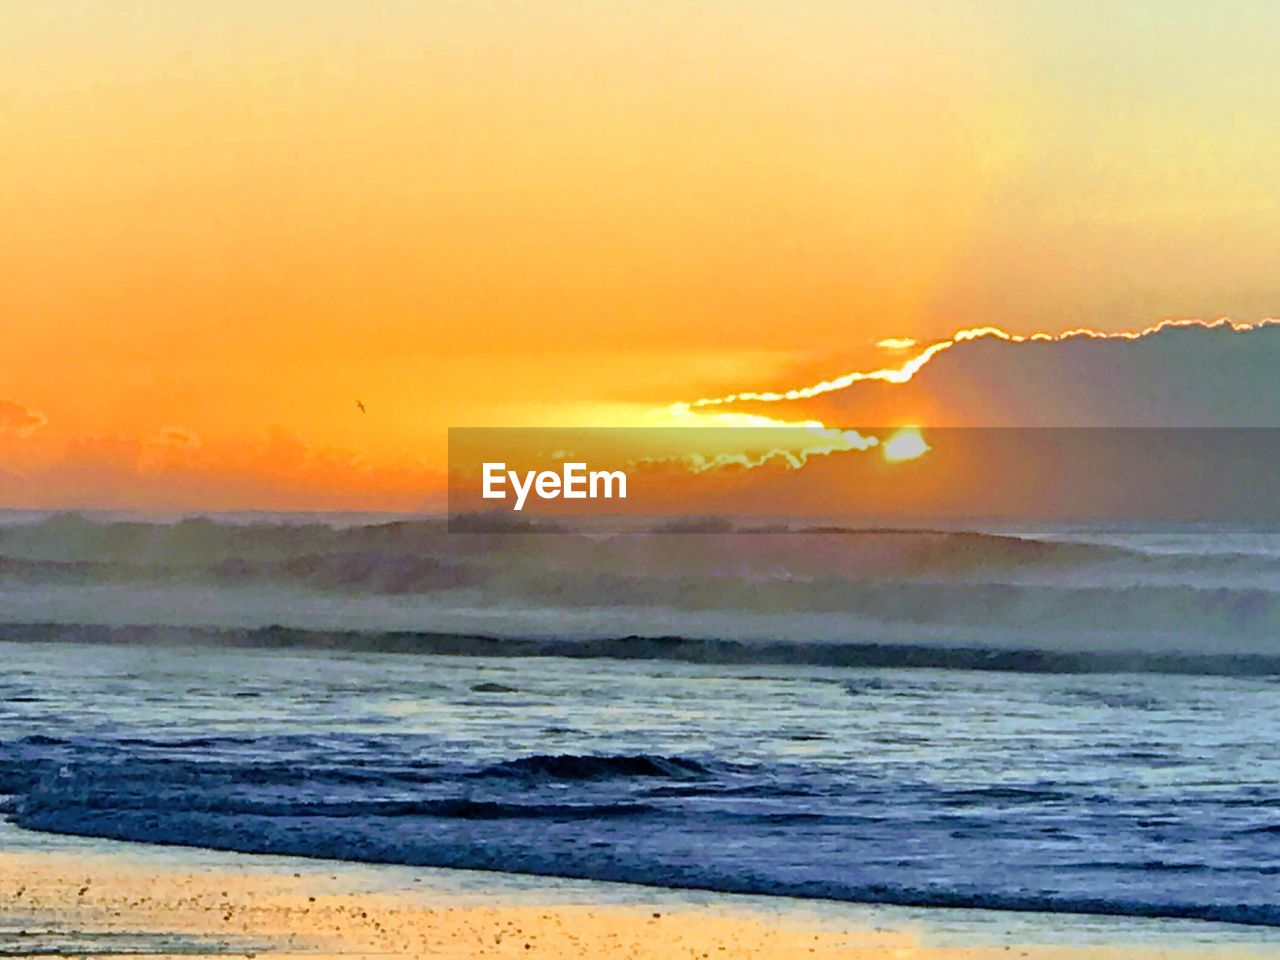 sunset, sea, sky, beauty in nature, scenics - nature, beach, water, land, orange color, wave, tranquility, idyllic, tranquil scene, motion, horizon, nature, outdoors, no people, horizon over water